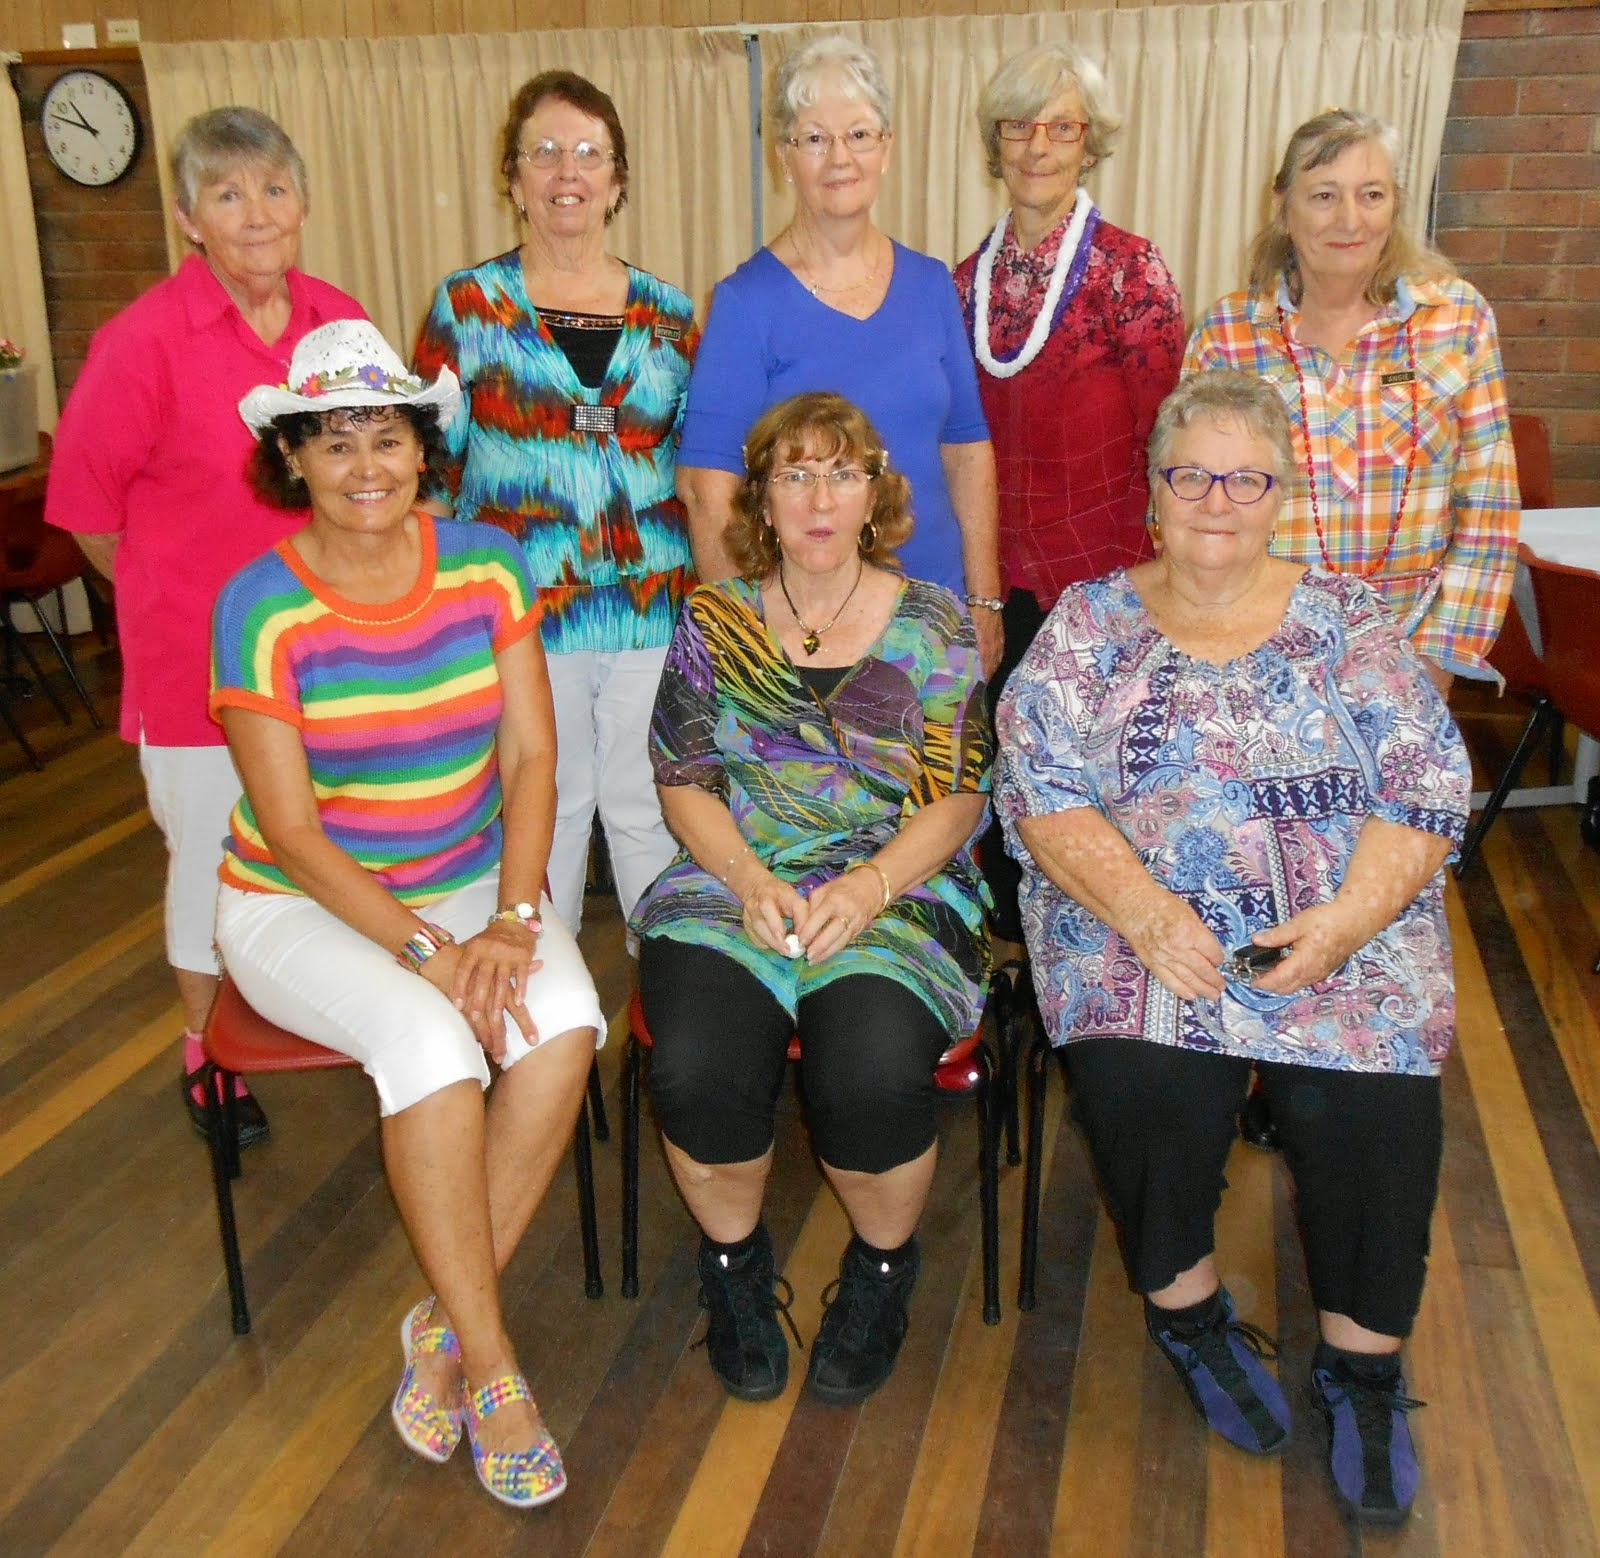 Coasters' Colour at Innisfail's Colour my world